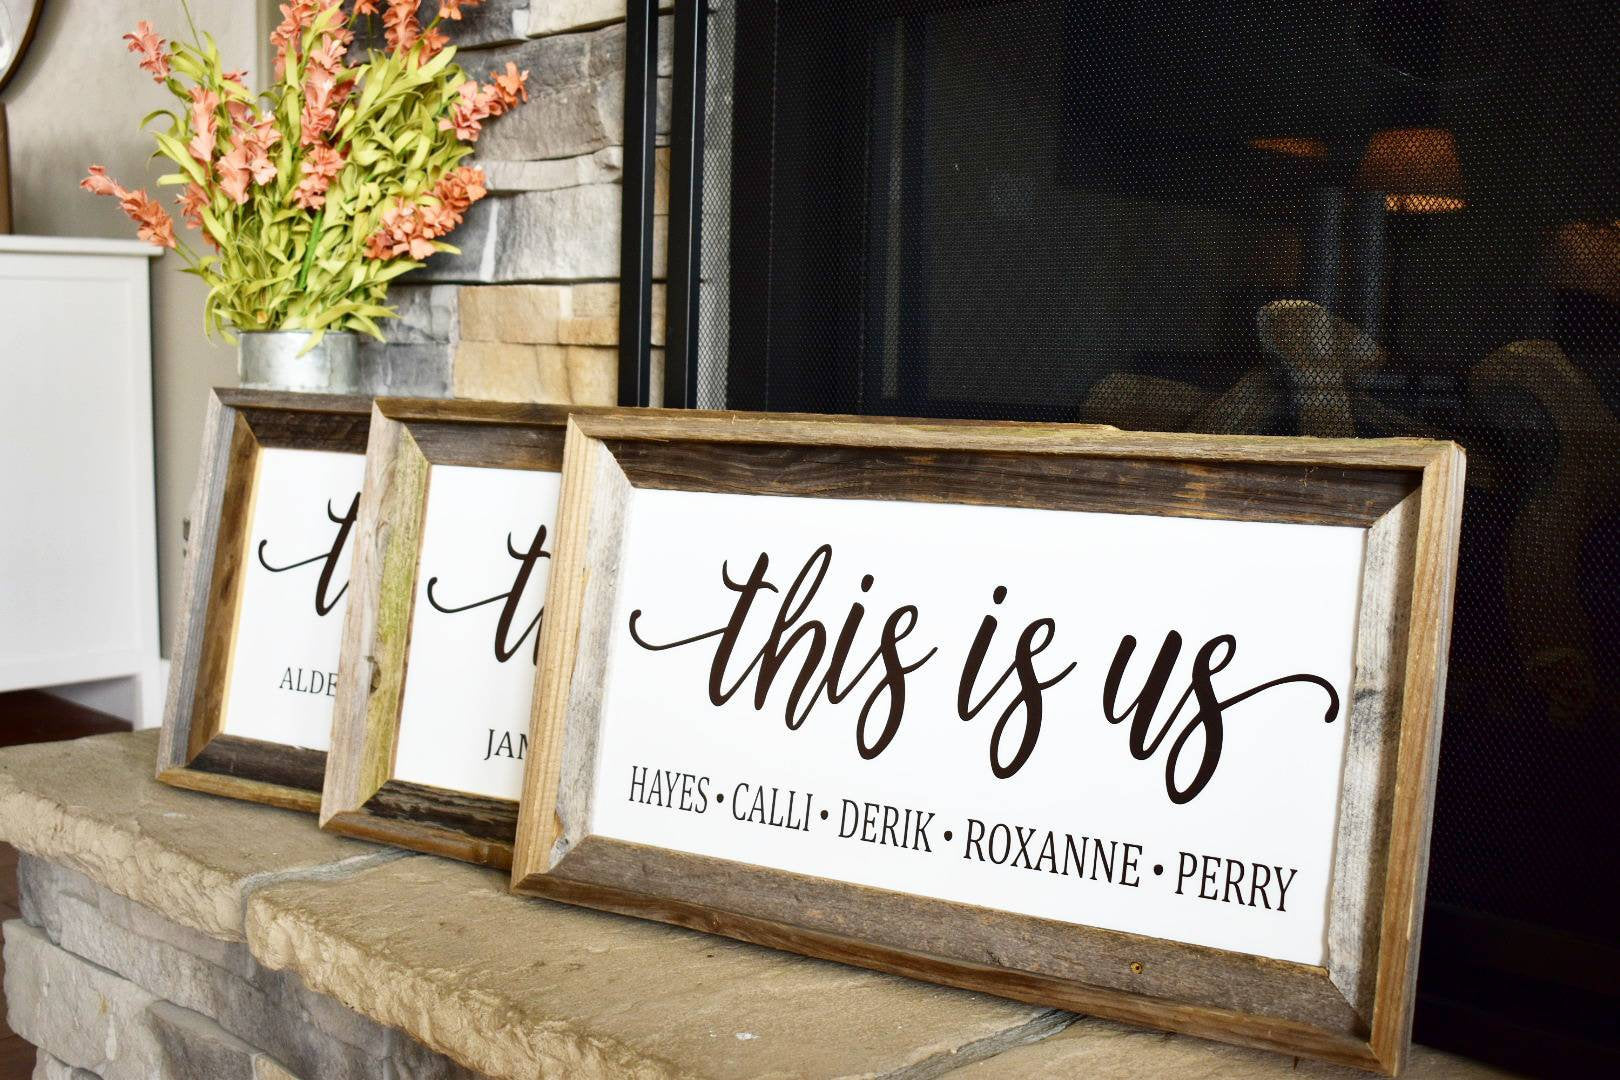 This is us, this is us personalized sign, 10x20 or 12x24, reclaimed wood frame, mothers day gift, family gift